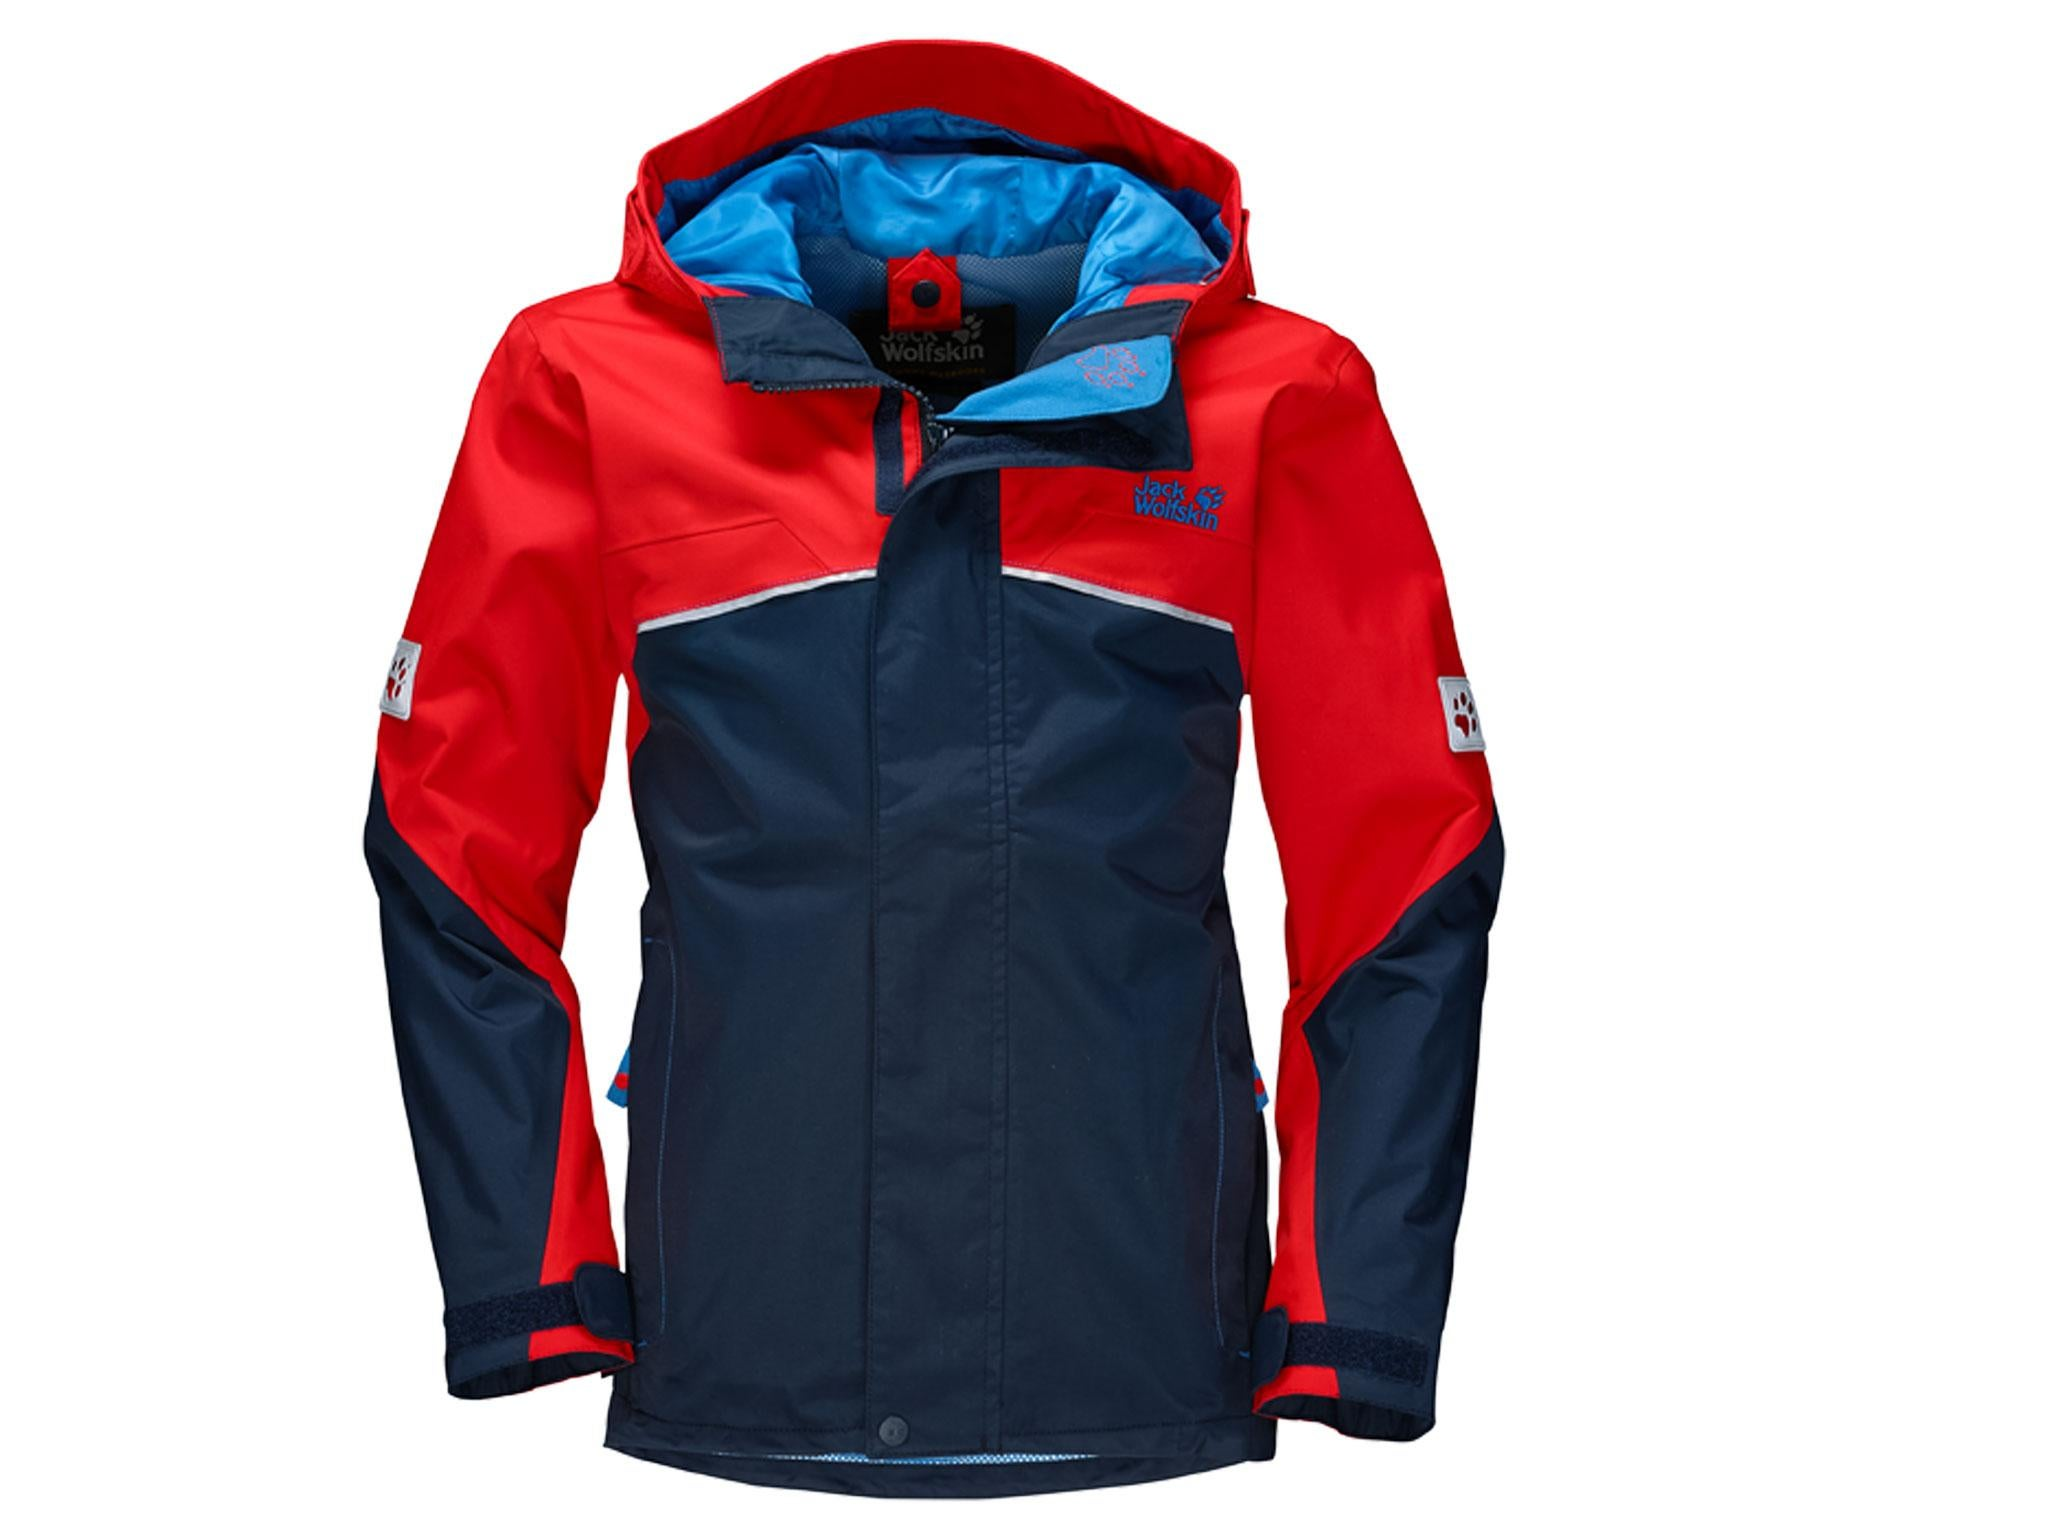 0093cc0e39b Jack Wolfskin Topaz 3-in-1 Boys  Raincoat (18 months to 14 years)  £65